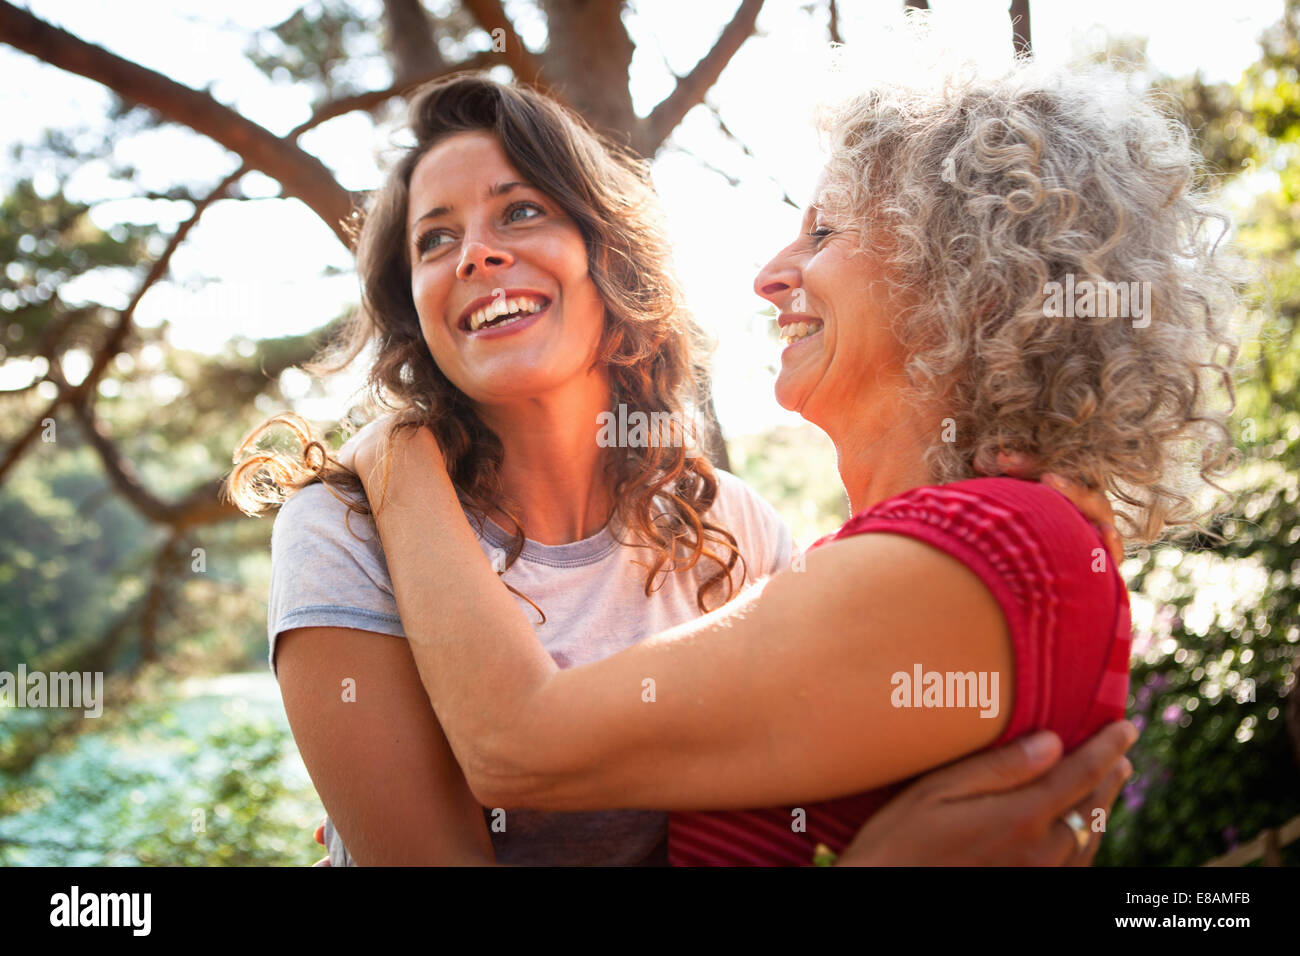 Mother and daughter enjoying nature - Stock Image